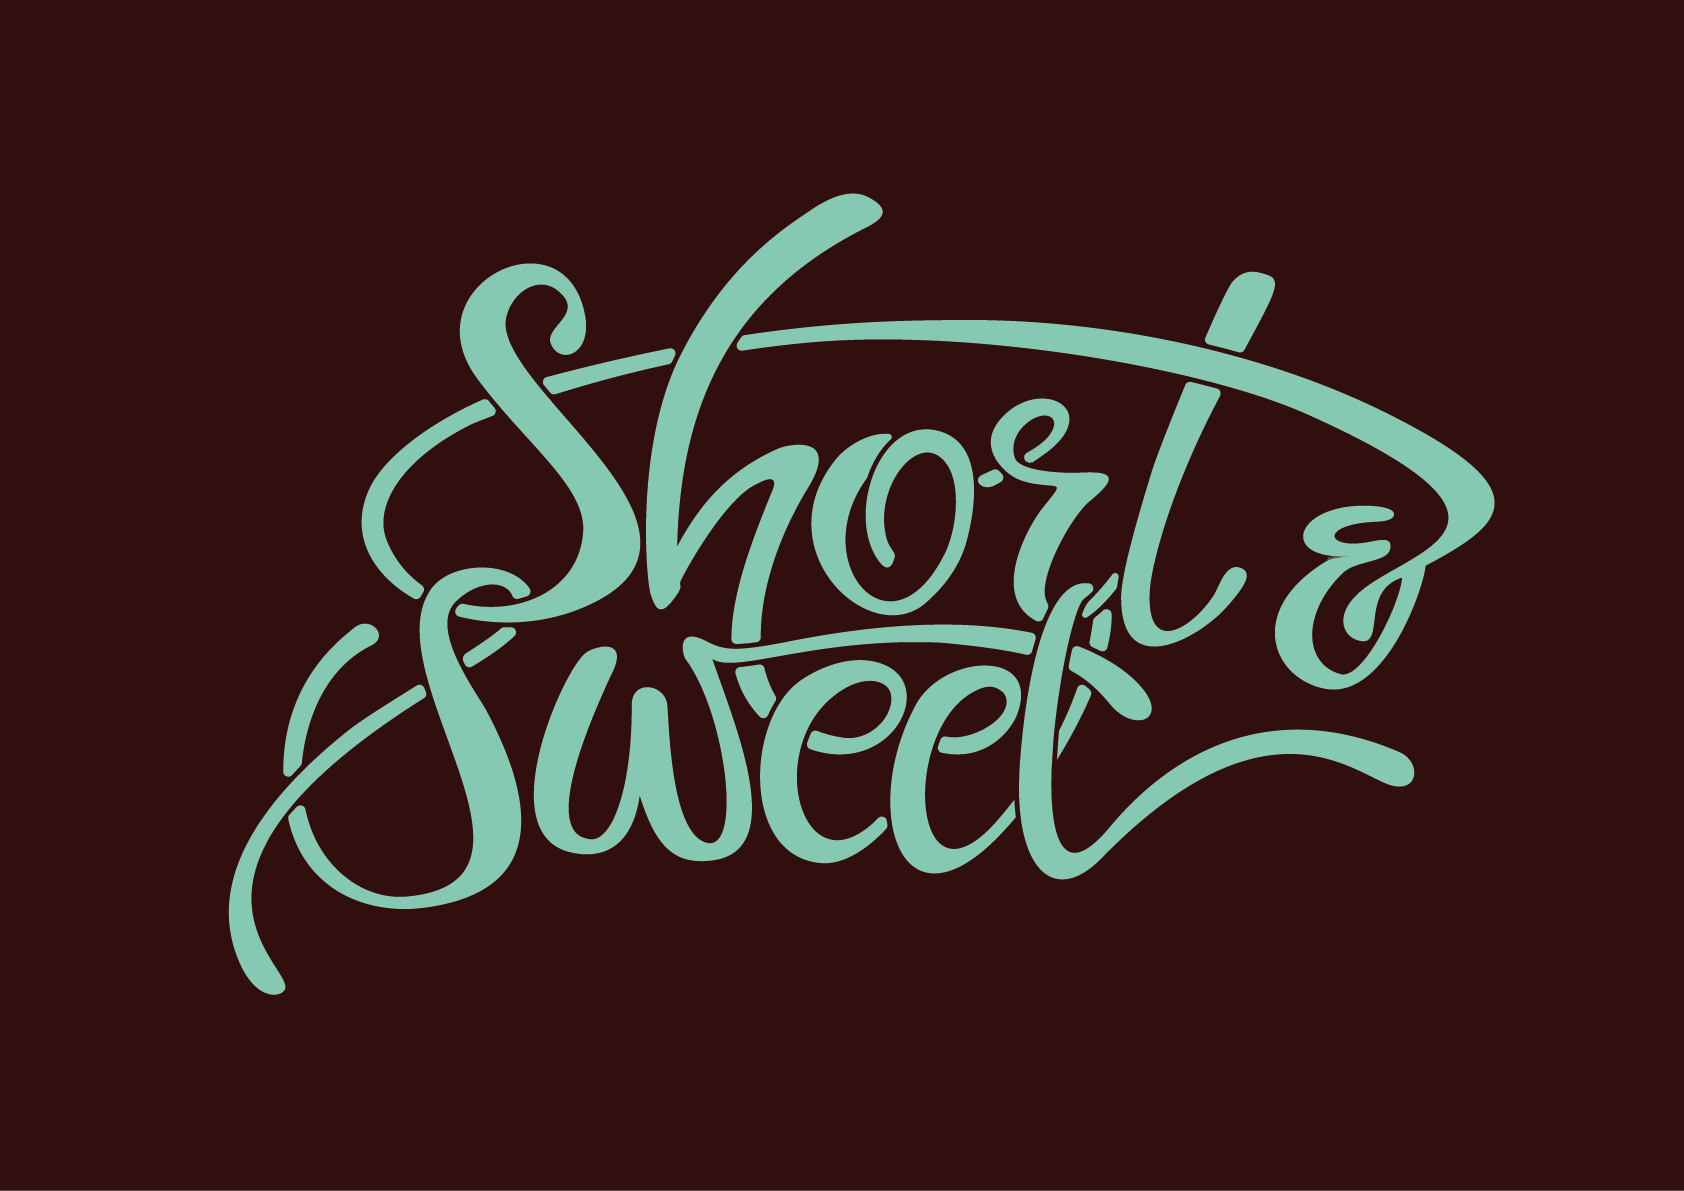 Short & Sweet - image 4 - student project